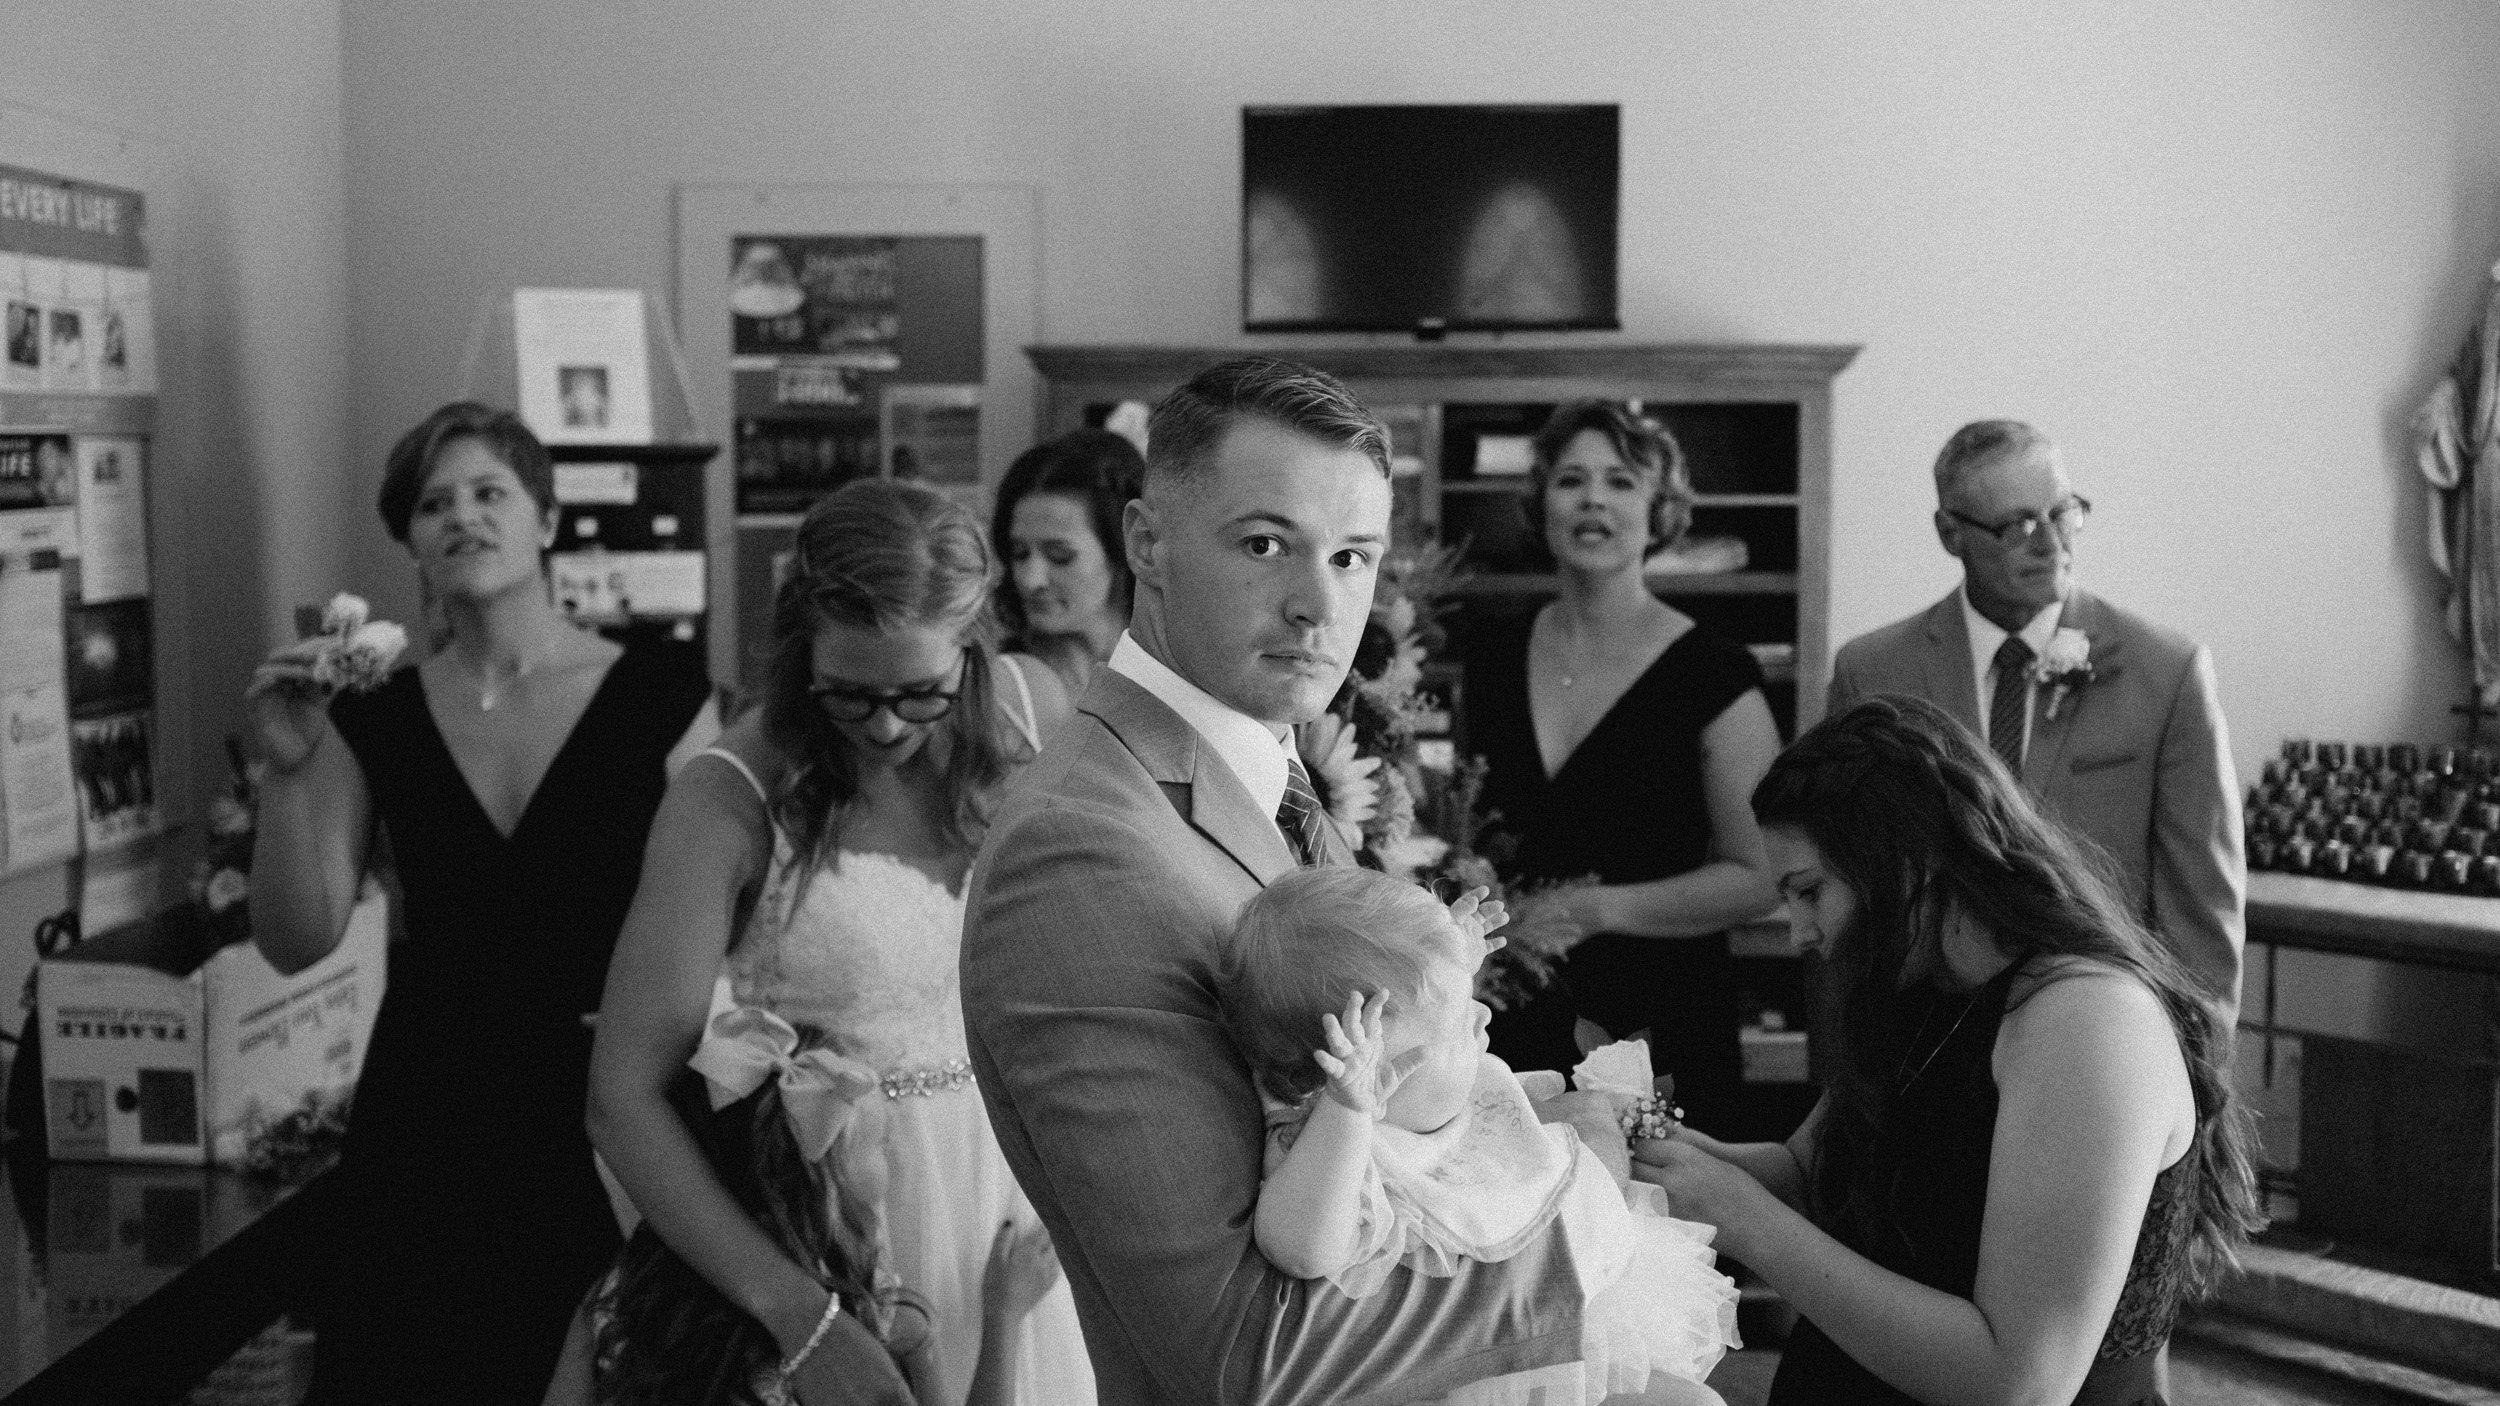 alec_vanderboom_john_micahel_lucy_kansas_city_wedding_photographer-0023.jpg